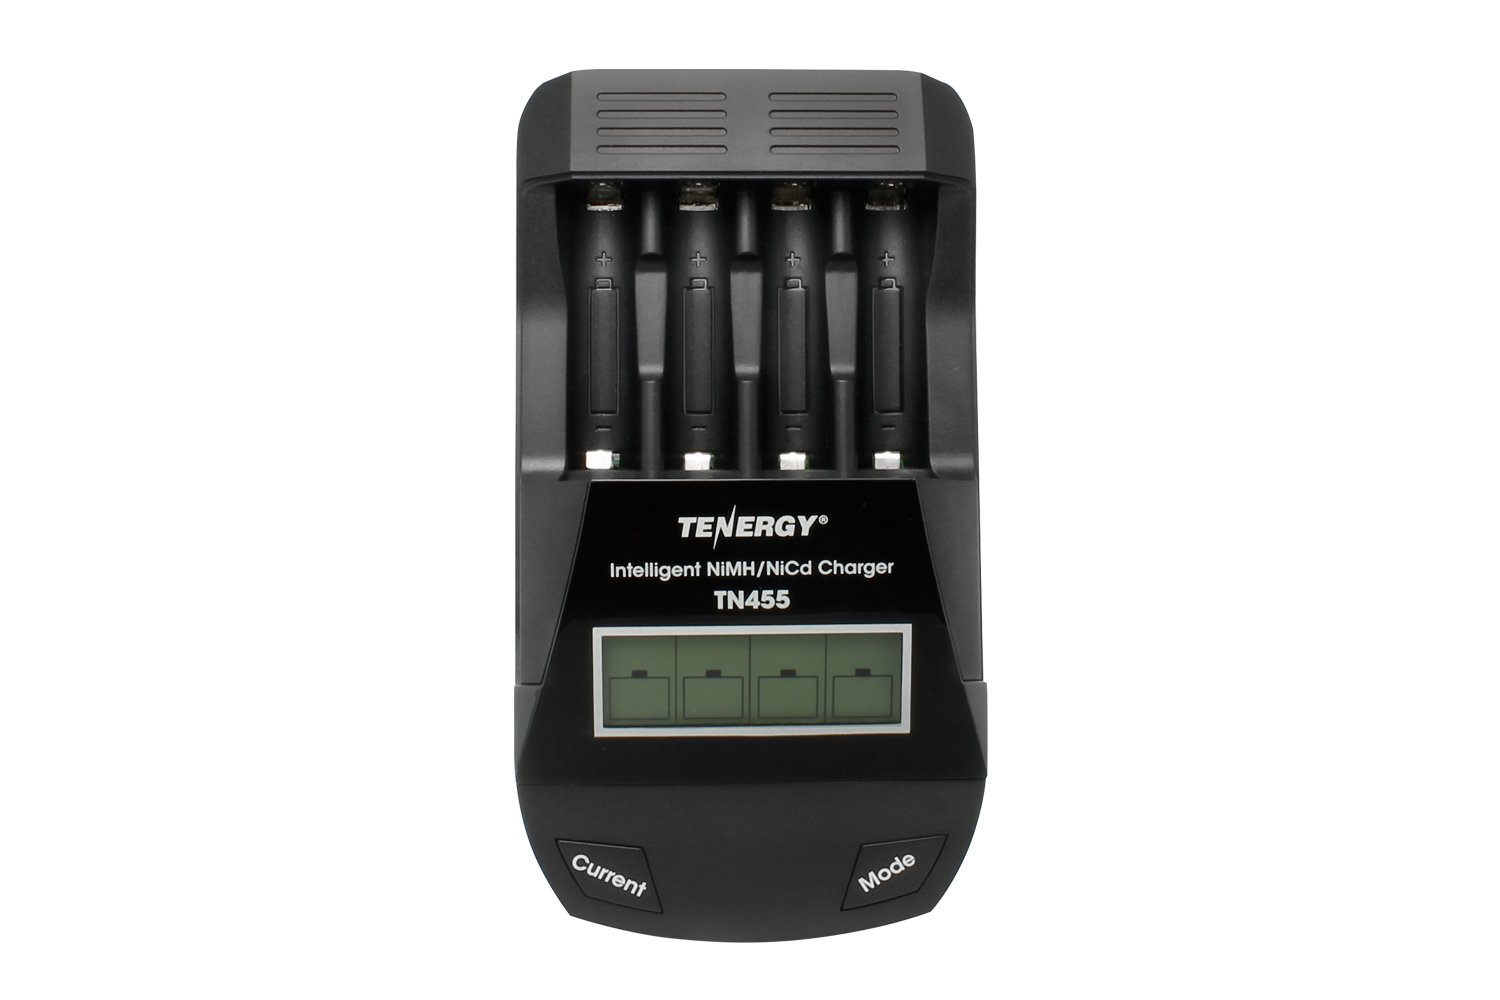 Tenergy TN455 Intelligent Battery Charger for NiMH, NiCd AA, AAA Rechargeable Batteries with 4-Bays, LCD Screen, USB Output (Charge, Discharge, Refresh, Test)